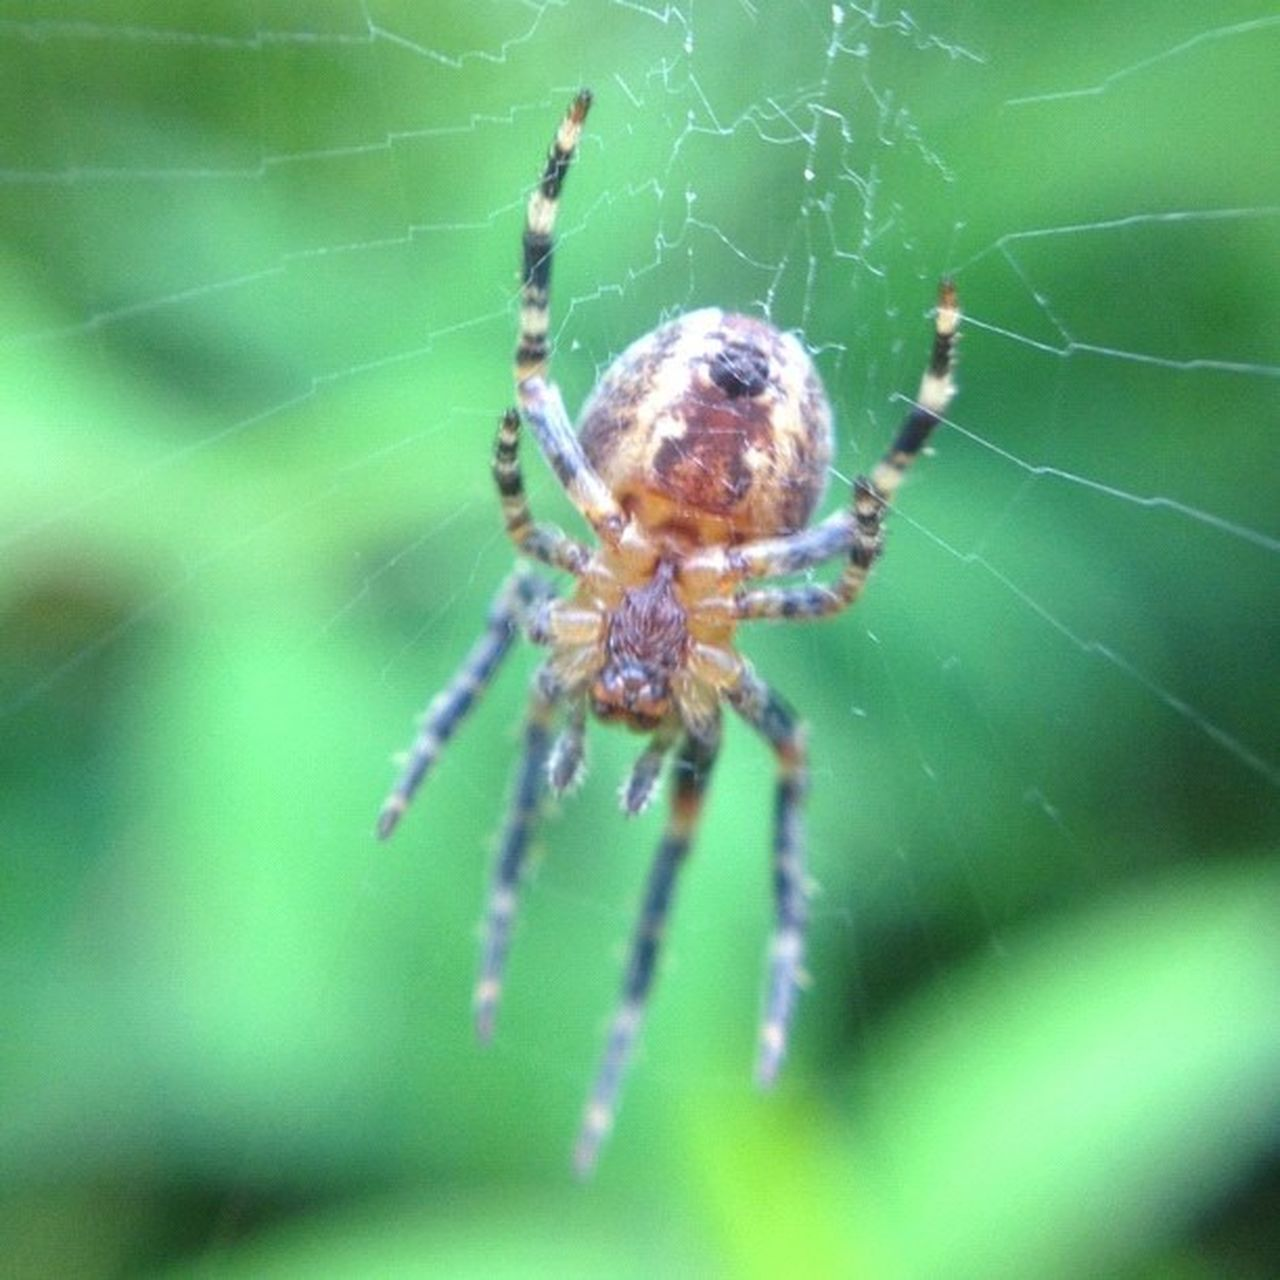 Image created with #Snapseed Spider Snapseed Improvedimage